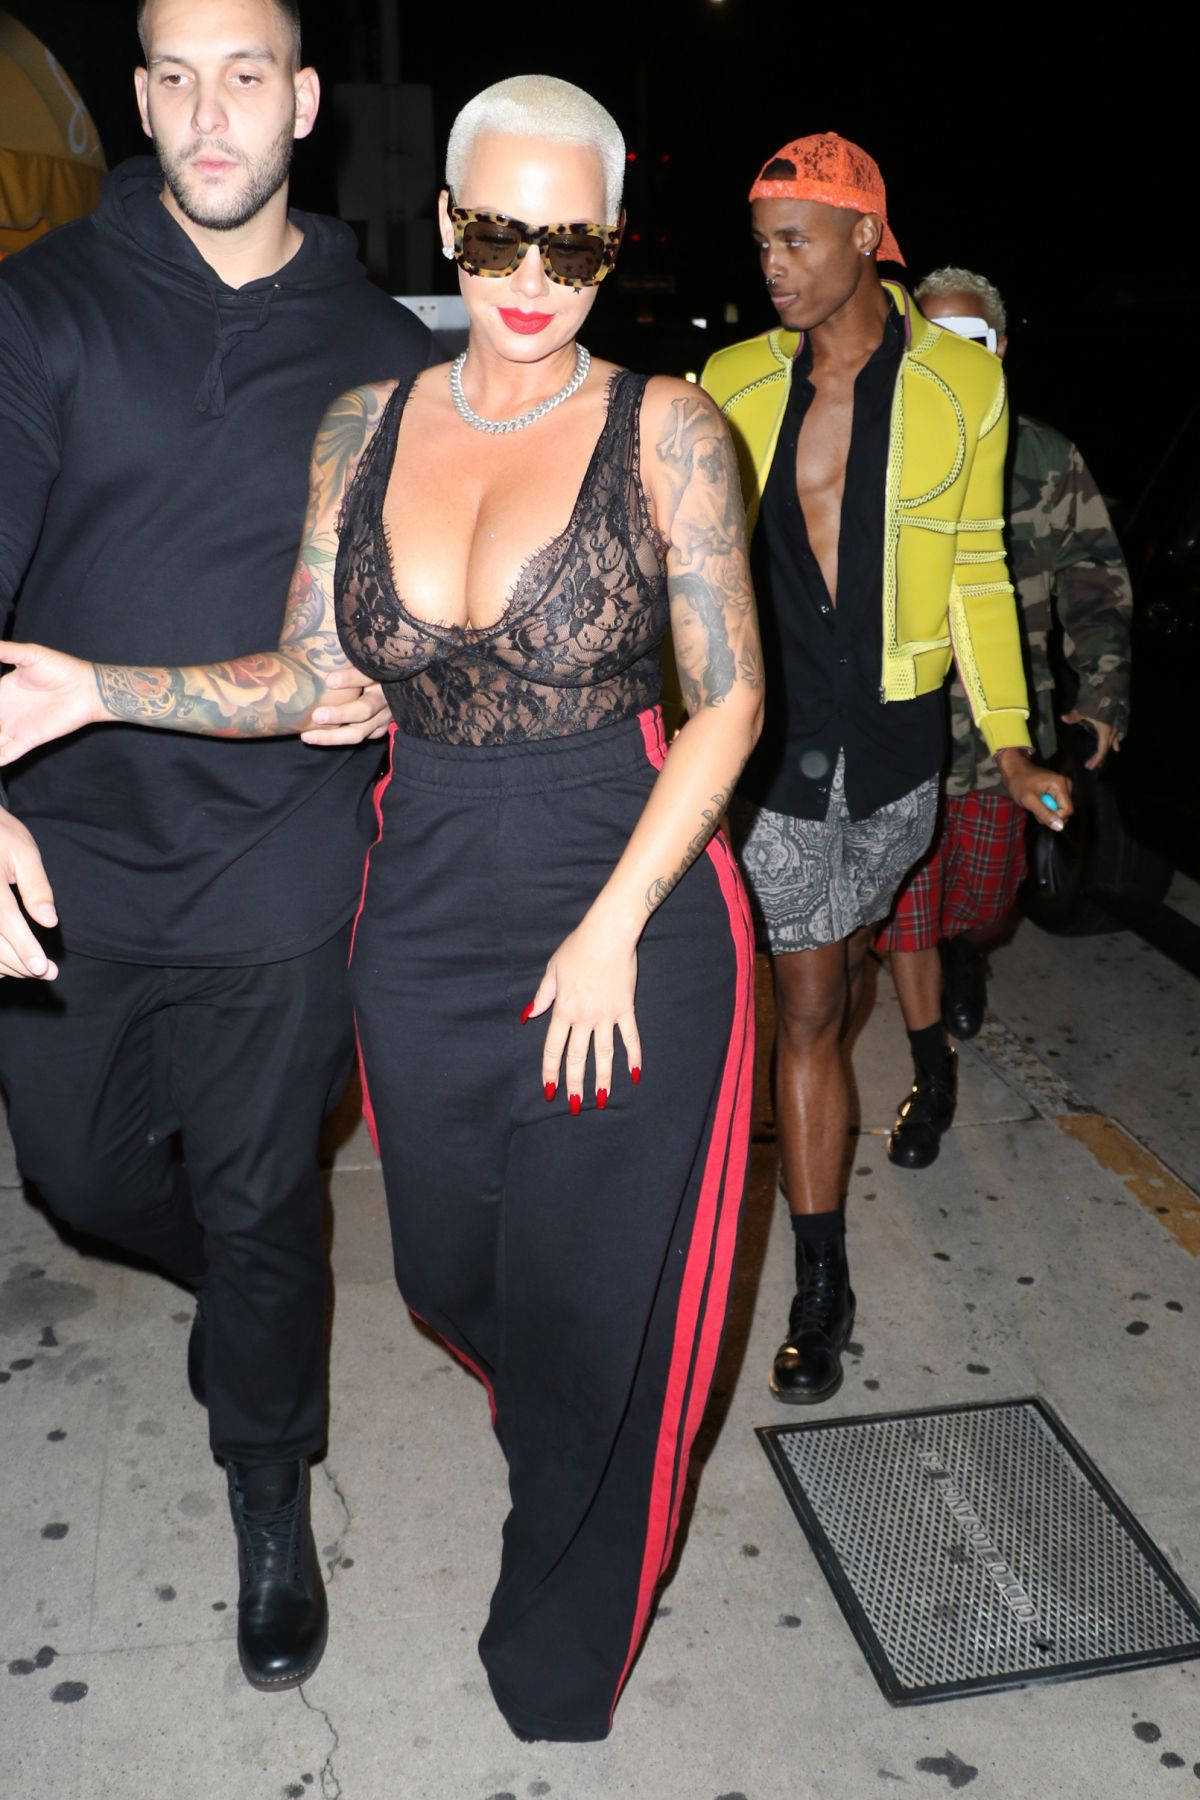 amber rose night out in santa monica 10292016